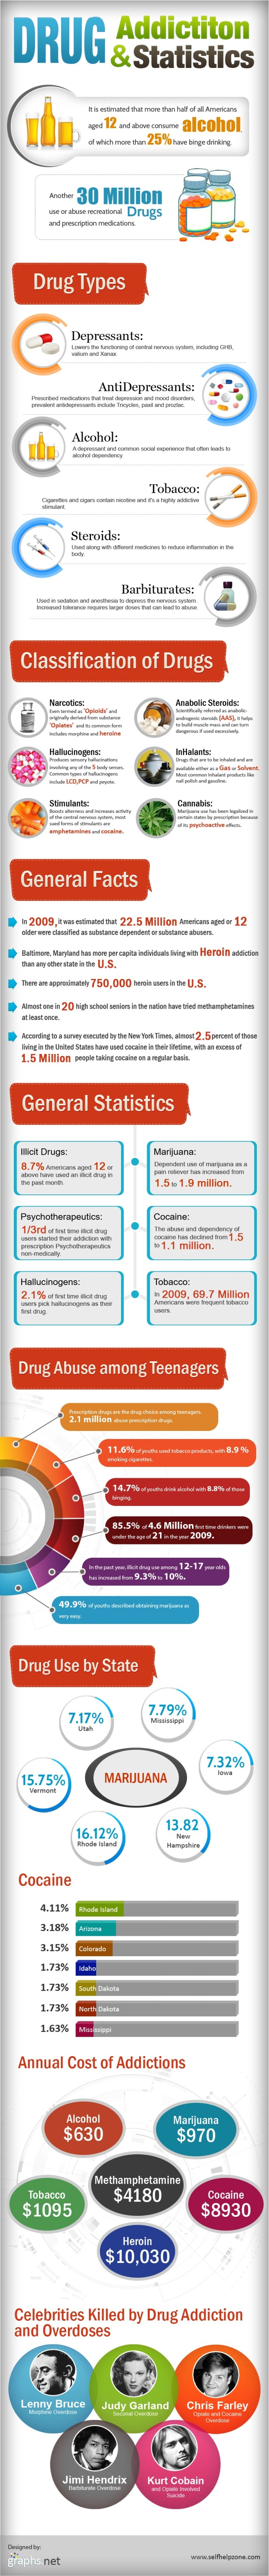 Drug Abuse Facts And Statistics